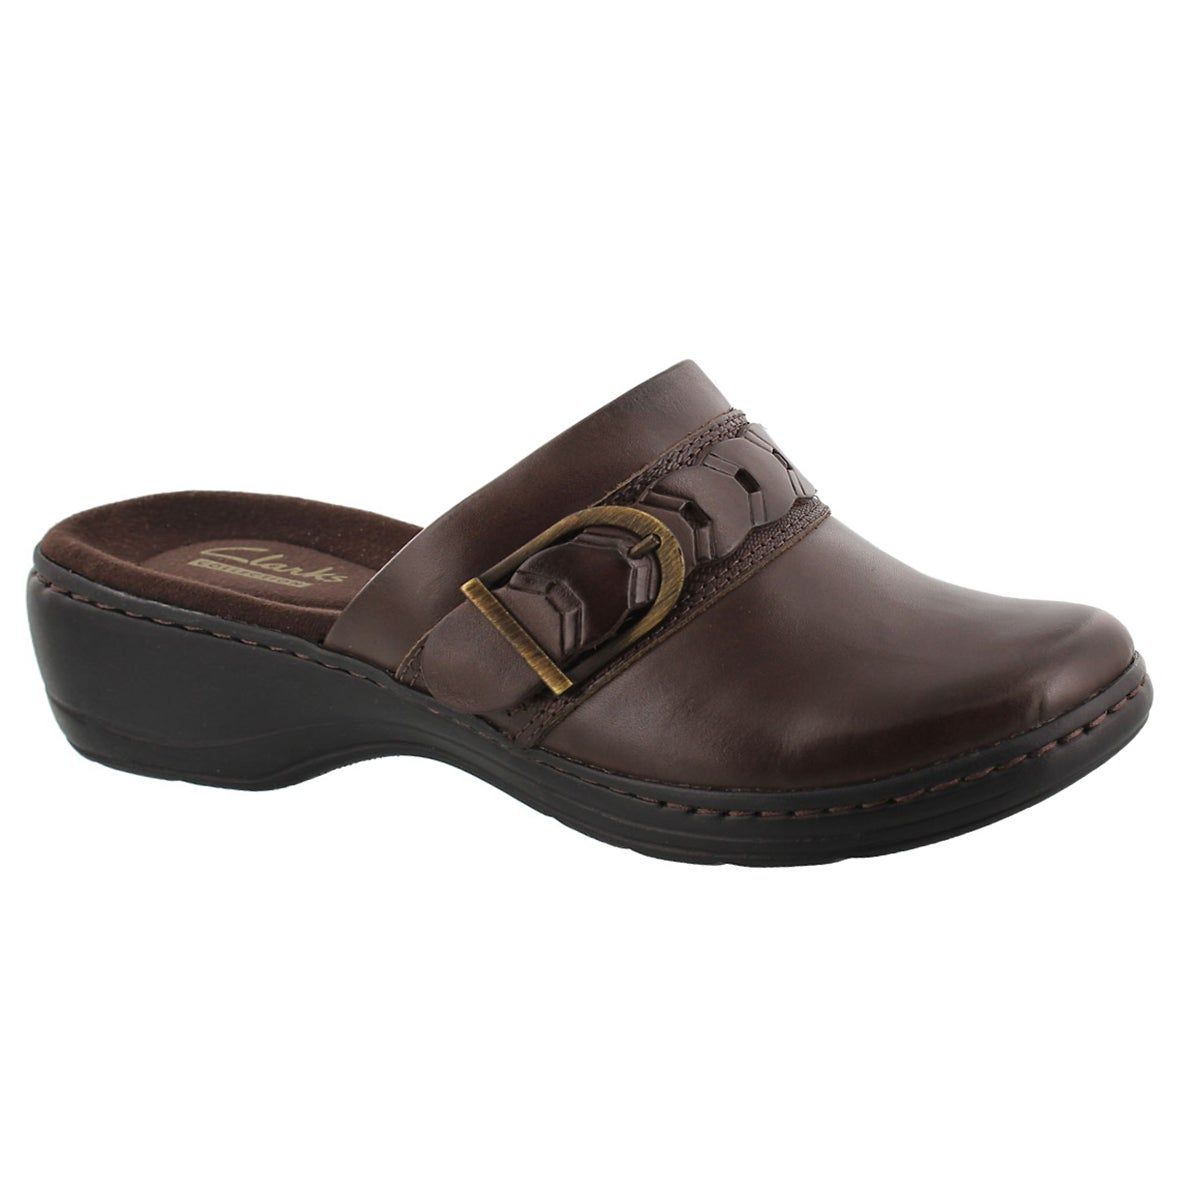 Women's HAYLA TITAN brown leather casual clogs